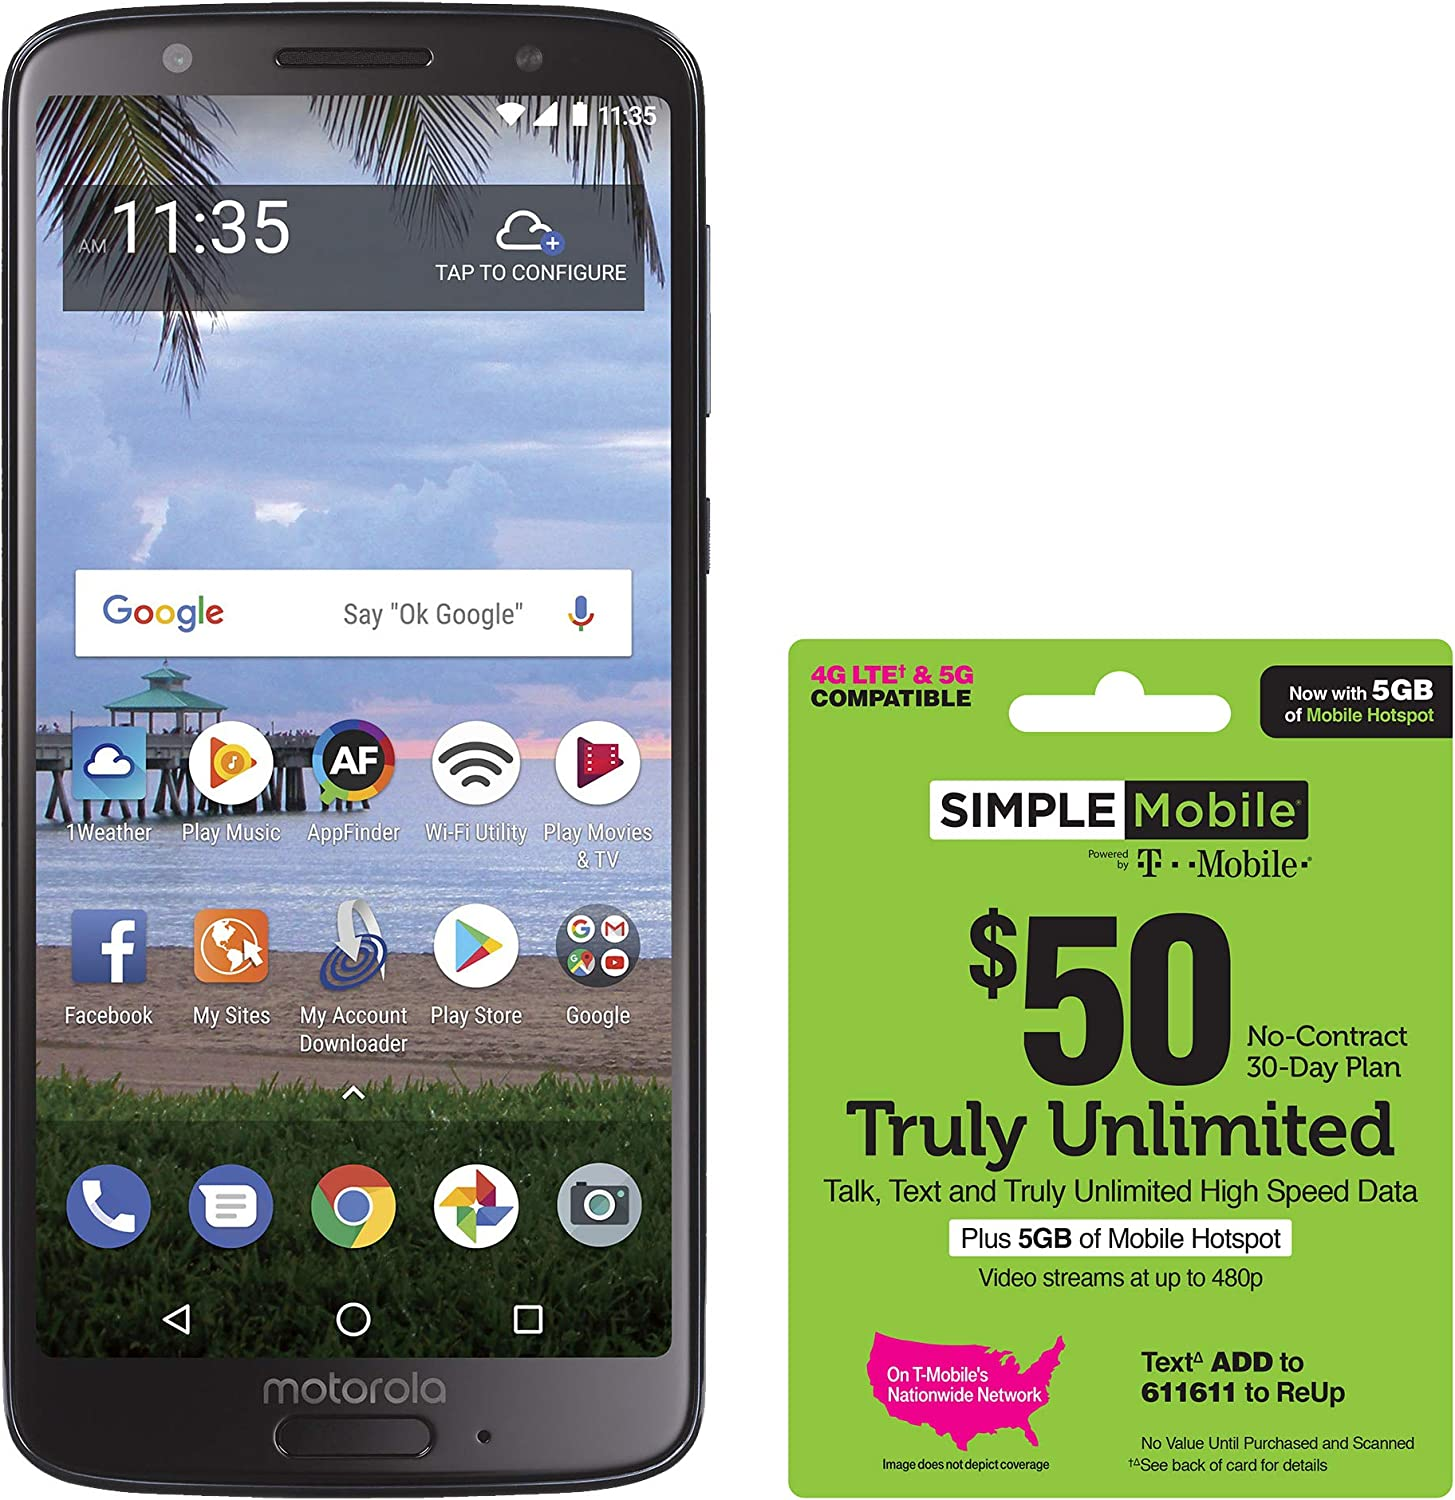 Simple Mobile Motorola Moto G6 4G LTE Prepaid Smartphone with $50 Truly Unlimited Airtime Bundle